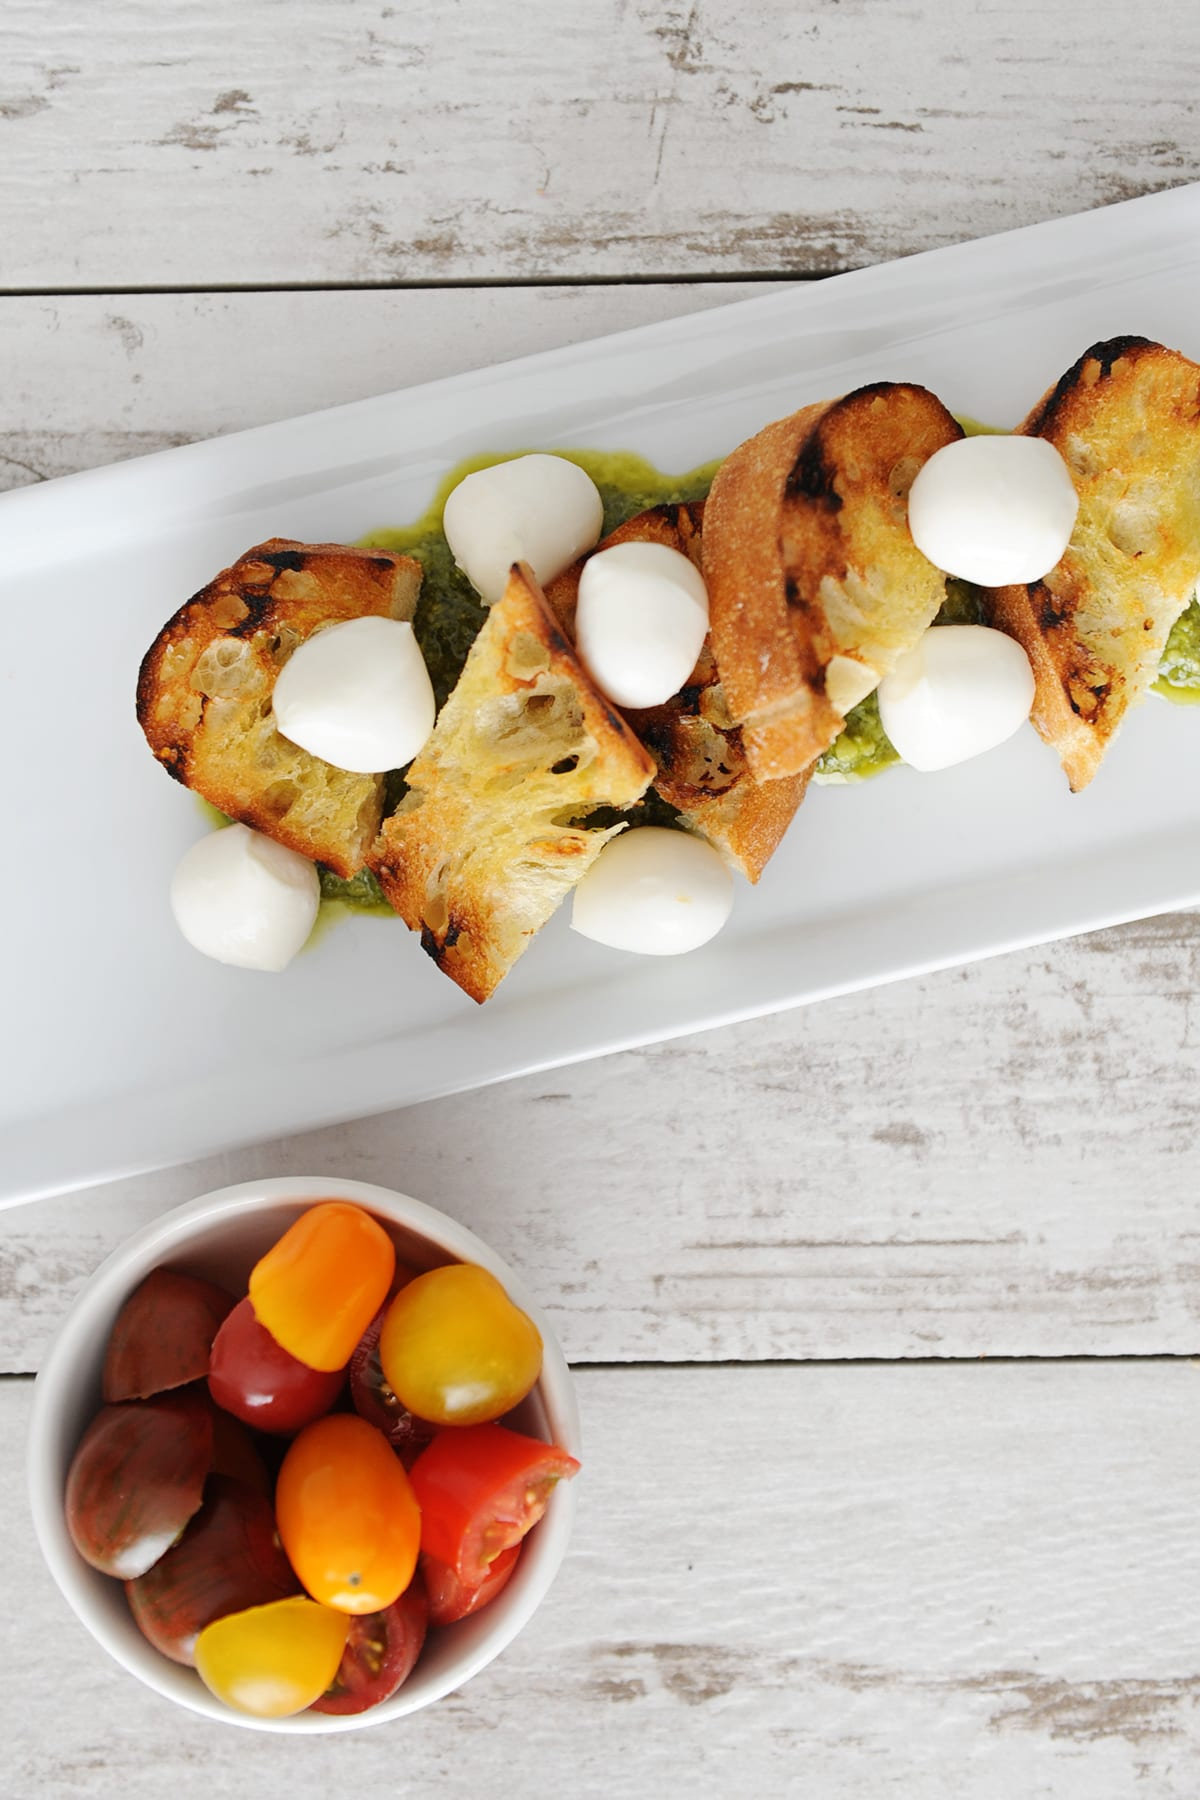 Easy burrata and heirloom tomatoes appetizer recipe step 2